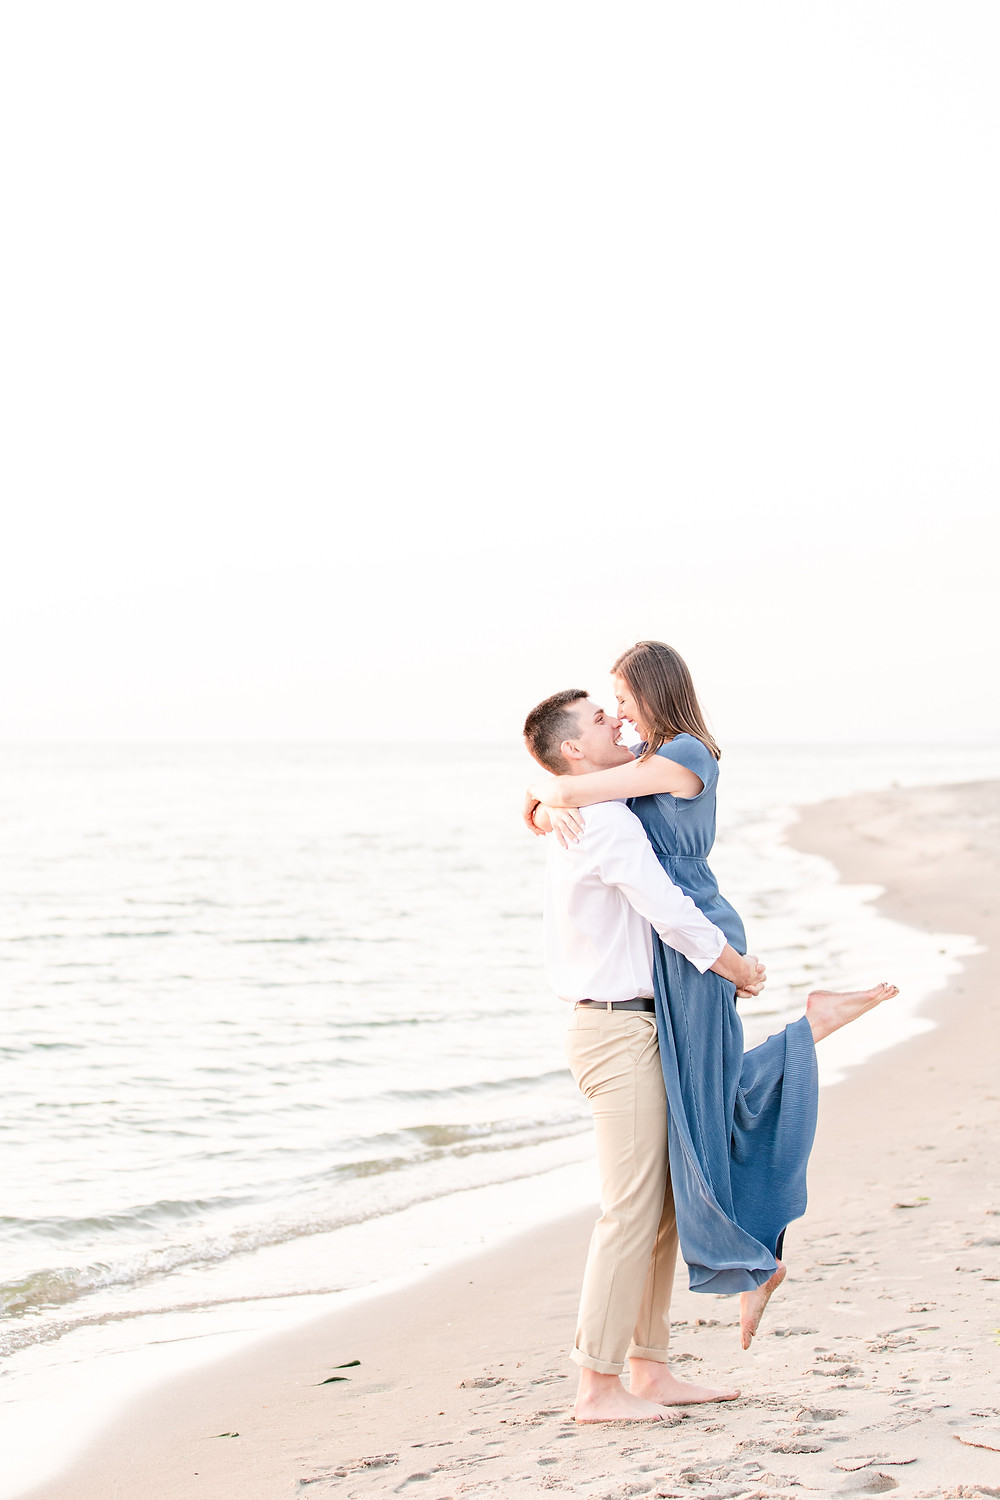 Josh and Andrea wedding photography husband and wife photographer team michigan engagement pictures session photo shoot fiance tunnel park lifting smiling beach